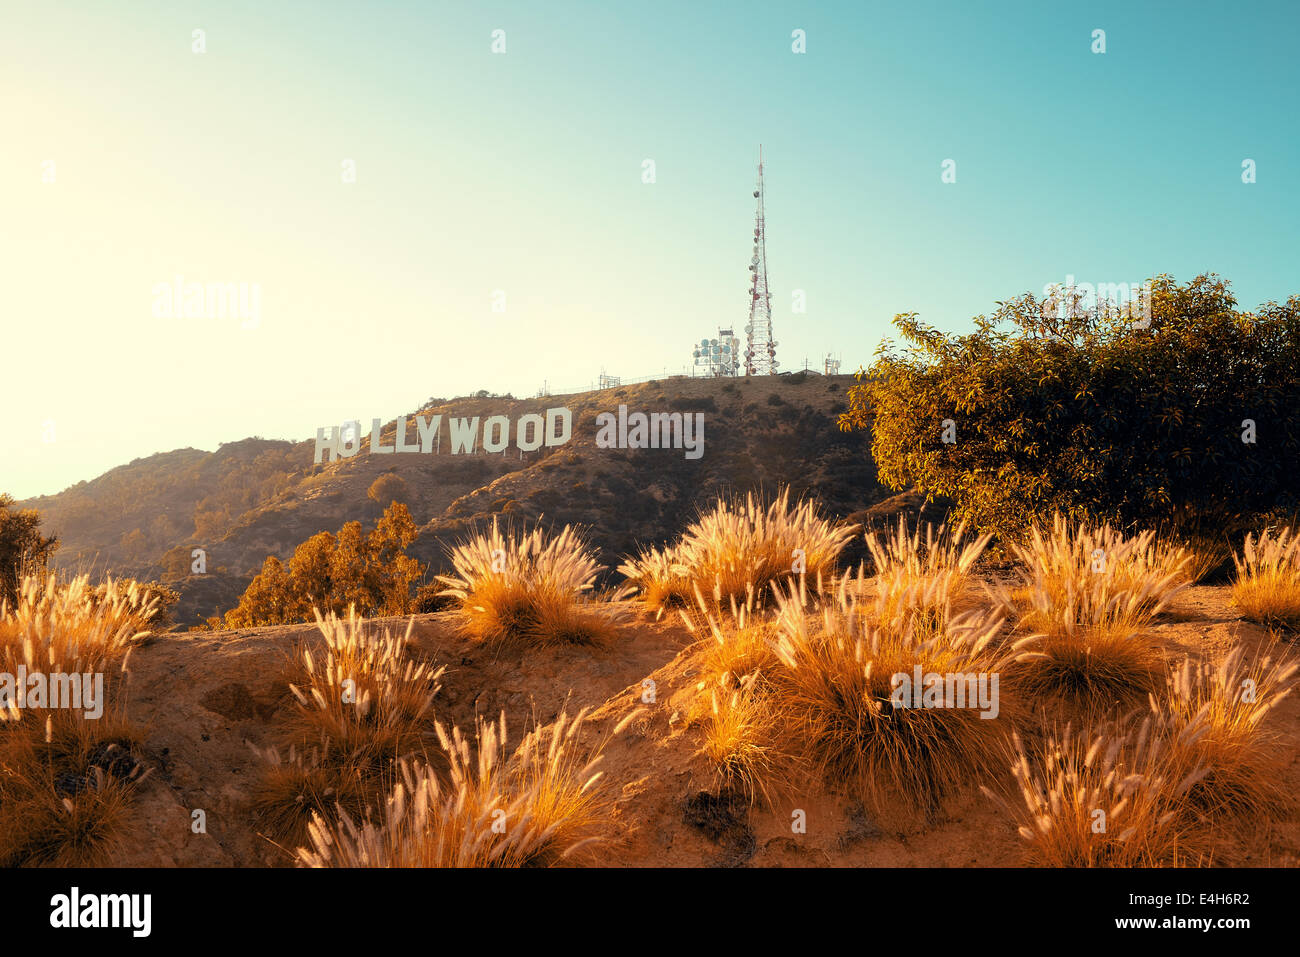 Los Angeles, CA - Mai 18: Hollywood-Schild am Berg am 18. Mai 2014 in Los Angeles. Entstand als eine Immobilien Stockbild